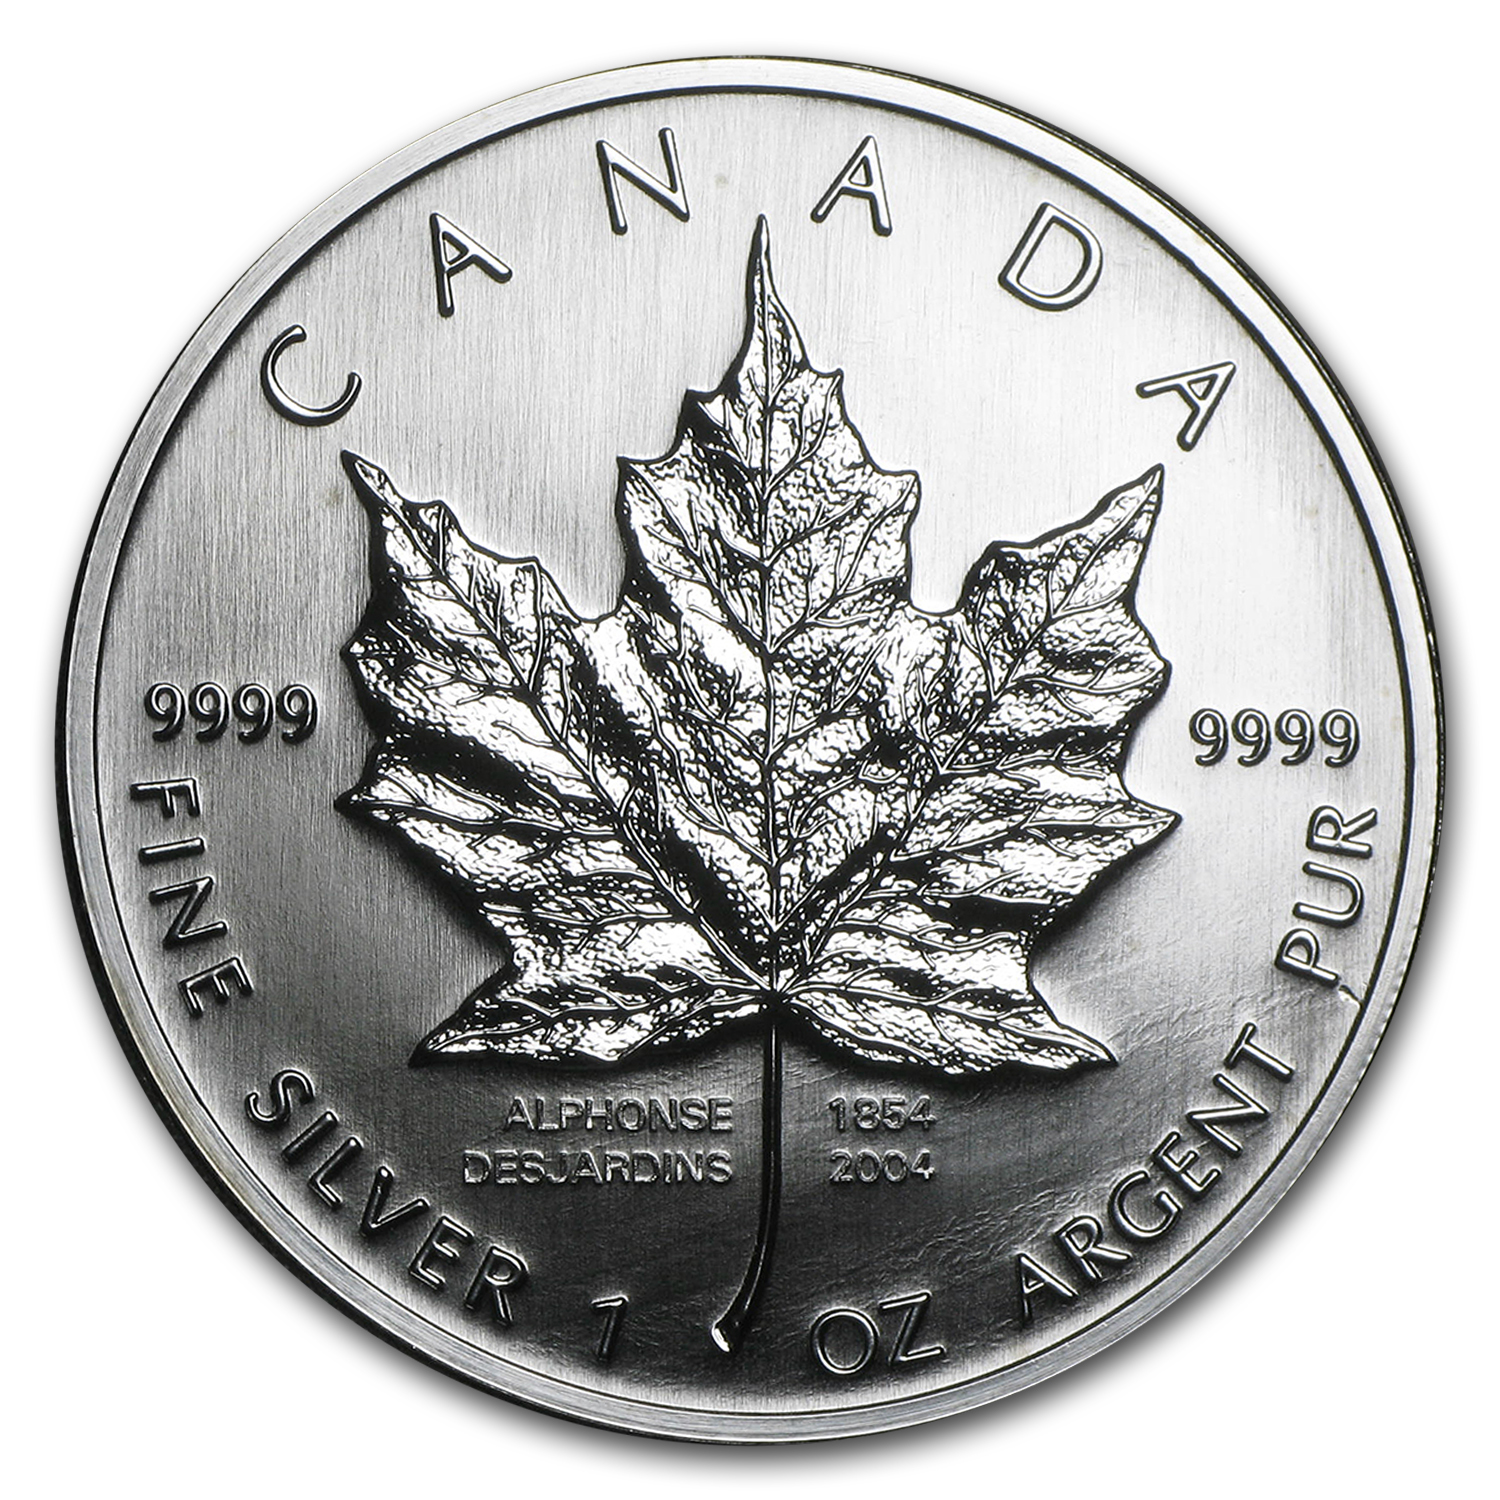 2004 Canada 1 oz Silver Maple Leaf (Desjardins 150th Ann)